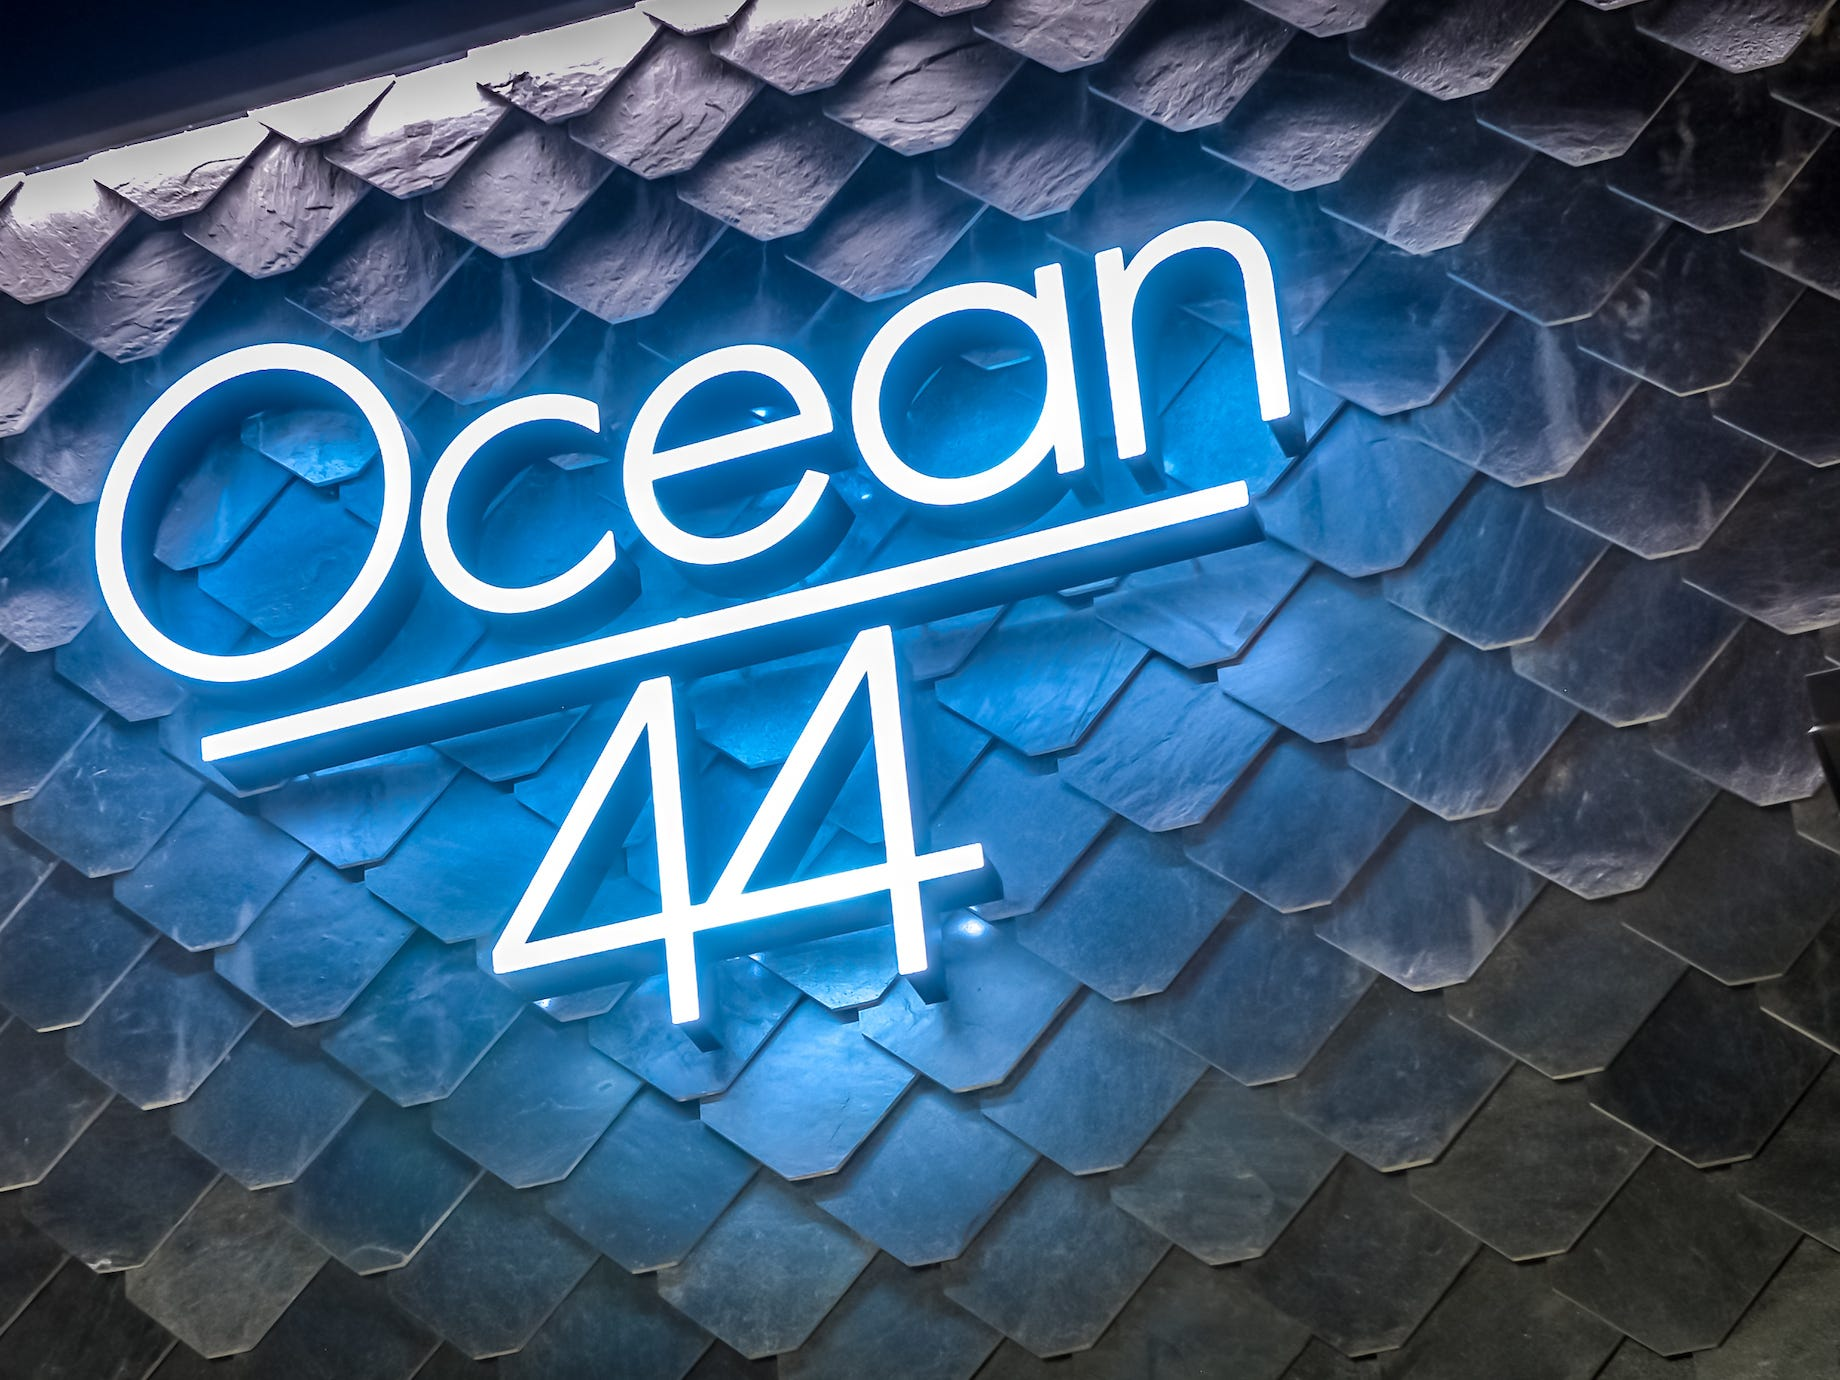 Ocean 44 signage illuminates the tiles that are made to look fish scale tiles.